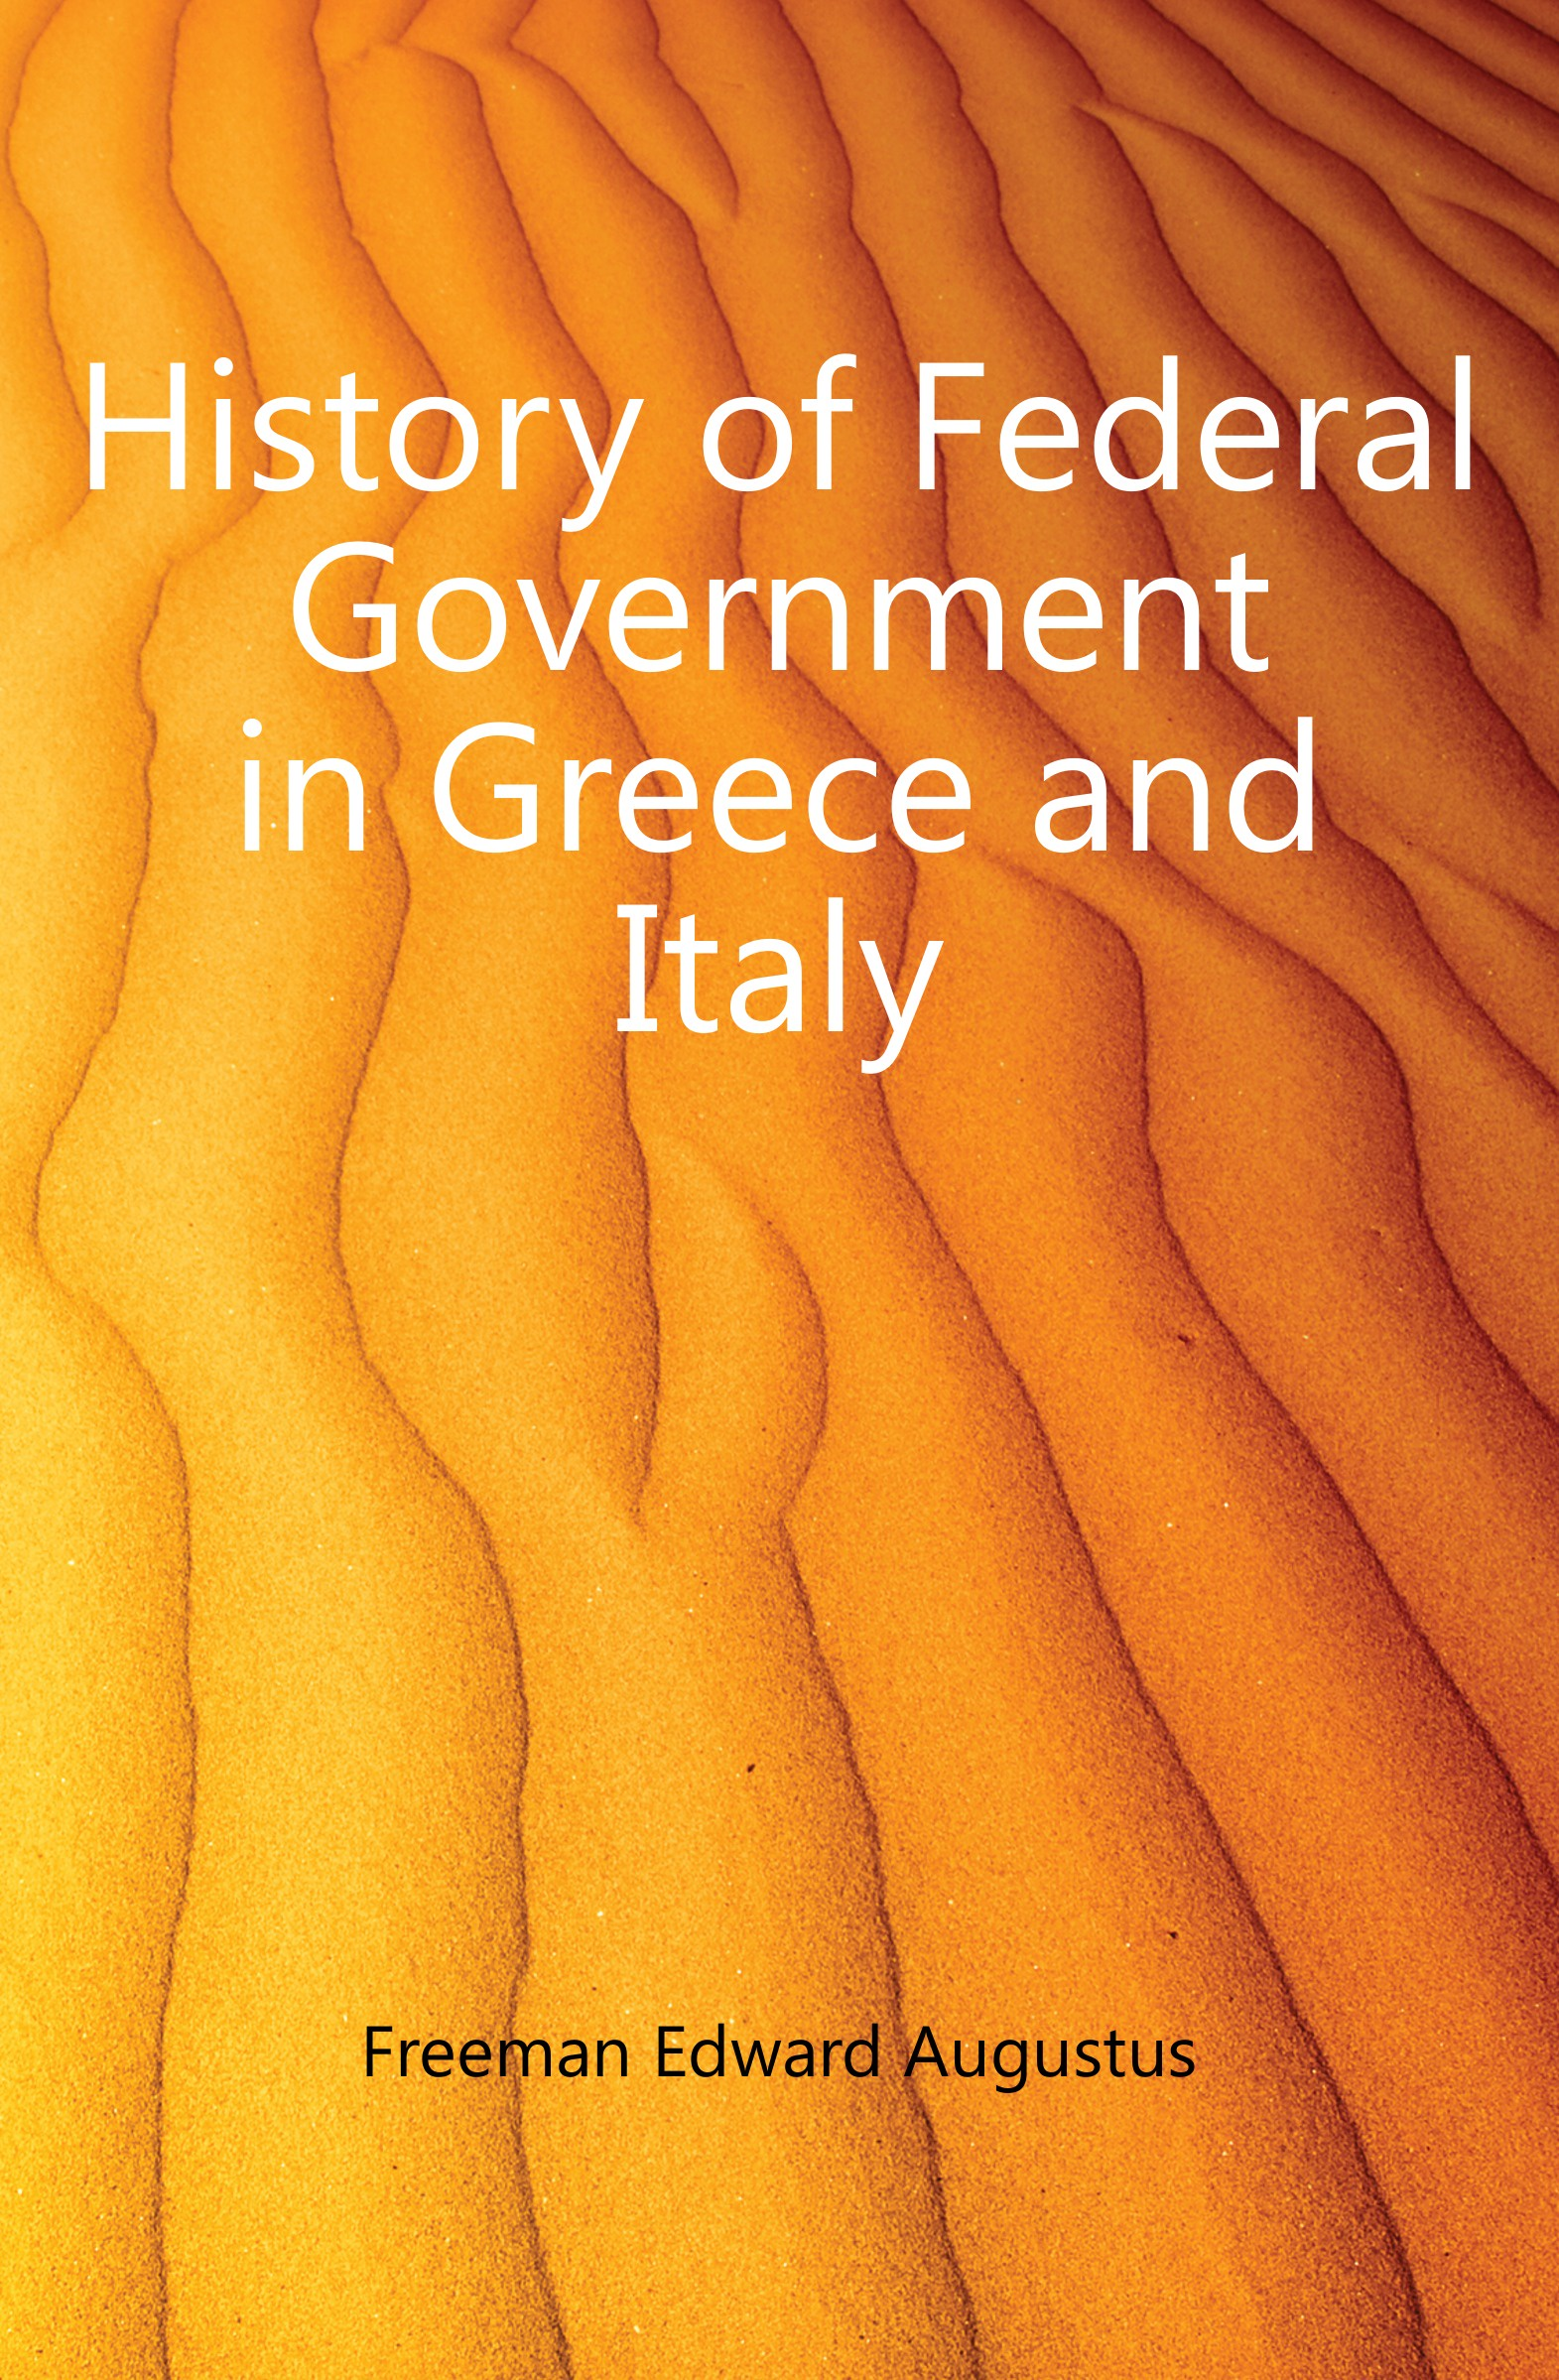 Freeman Edward Augustus History of Federal Government in Greece and Italy